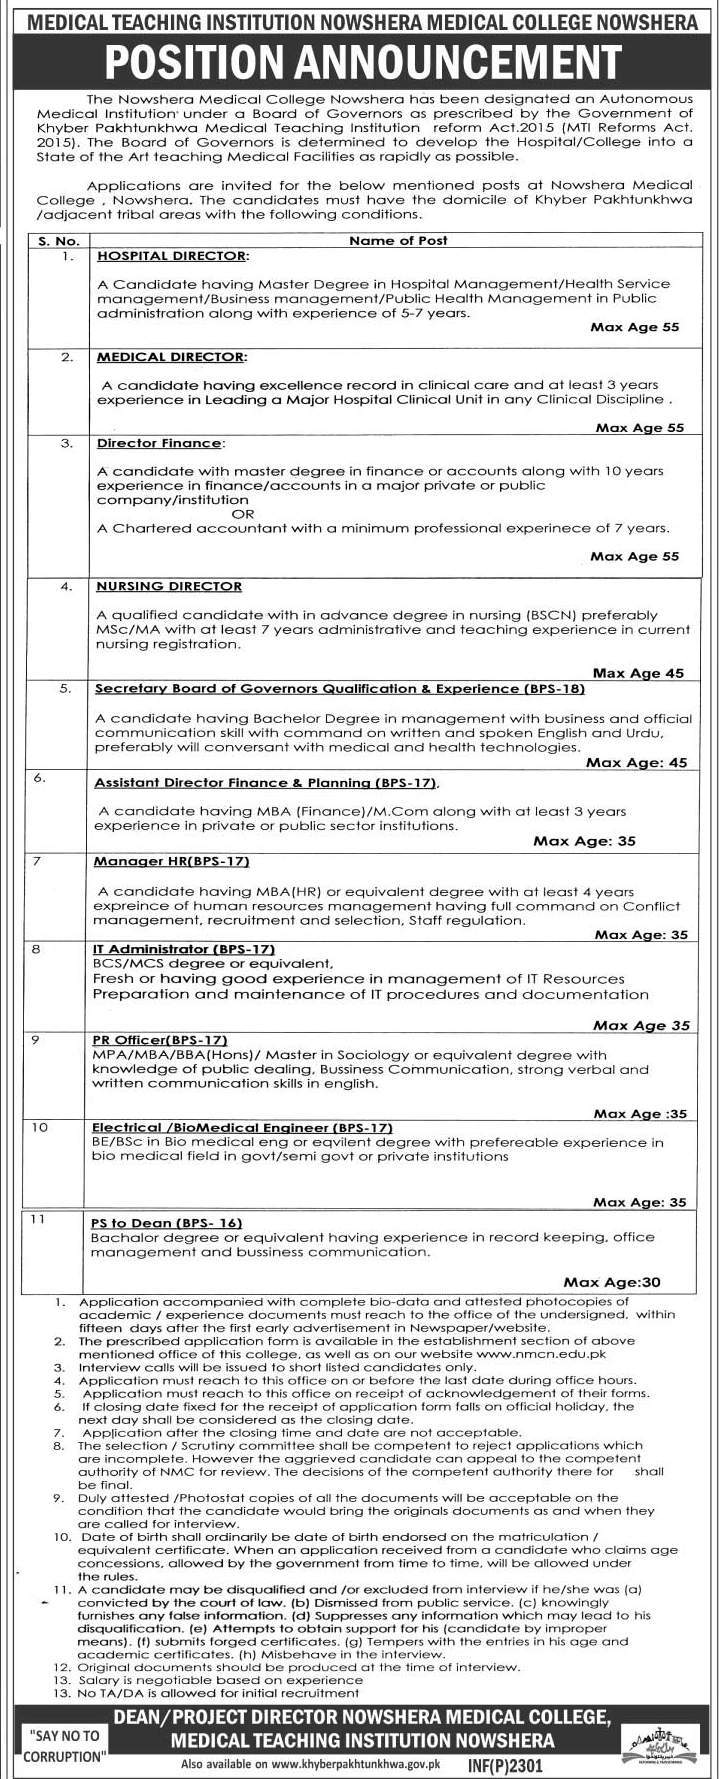 Medical Teaching Institution Nowshera Jobs 2016